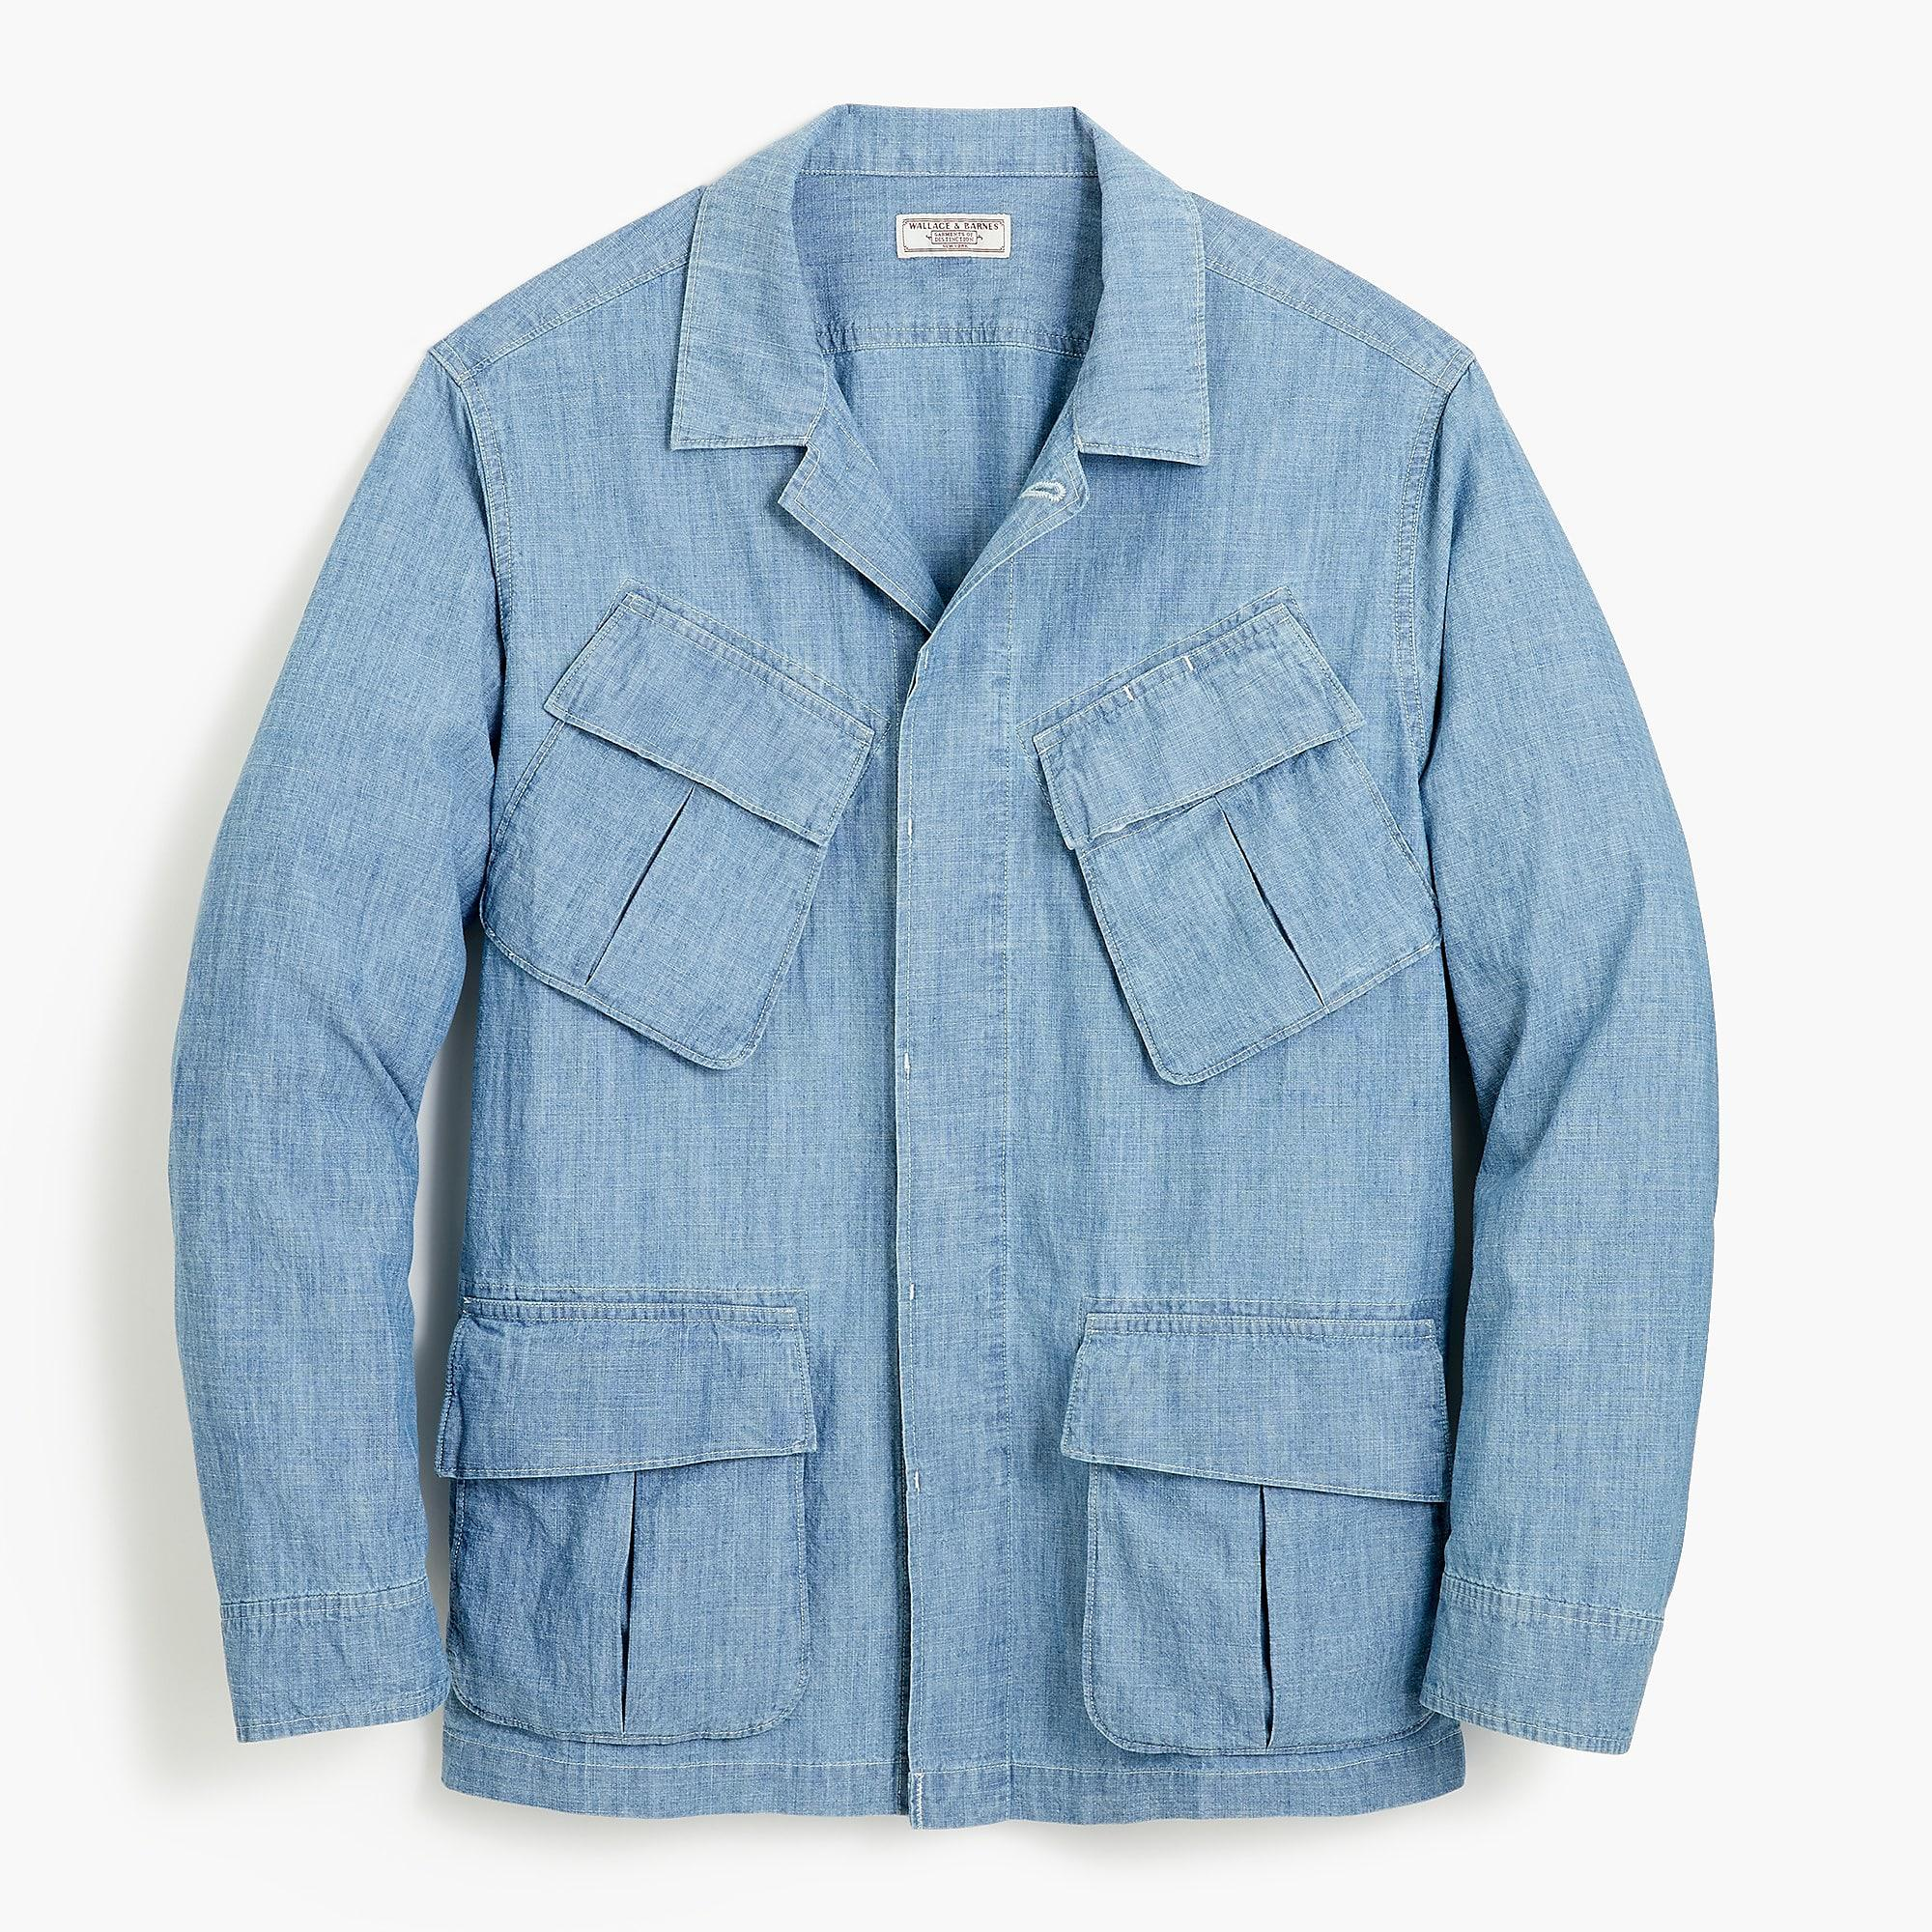 J.Crew Cotton Wallace & Barnes Chore Jacket In Chambray in Indigo (Blue) for Men